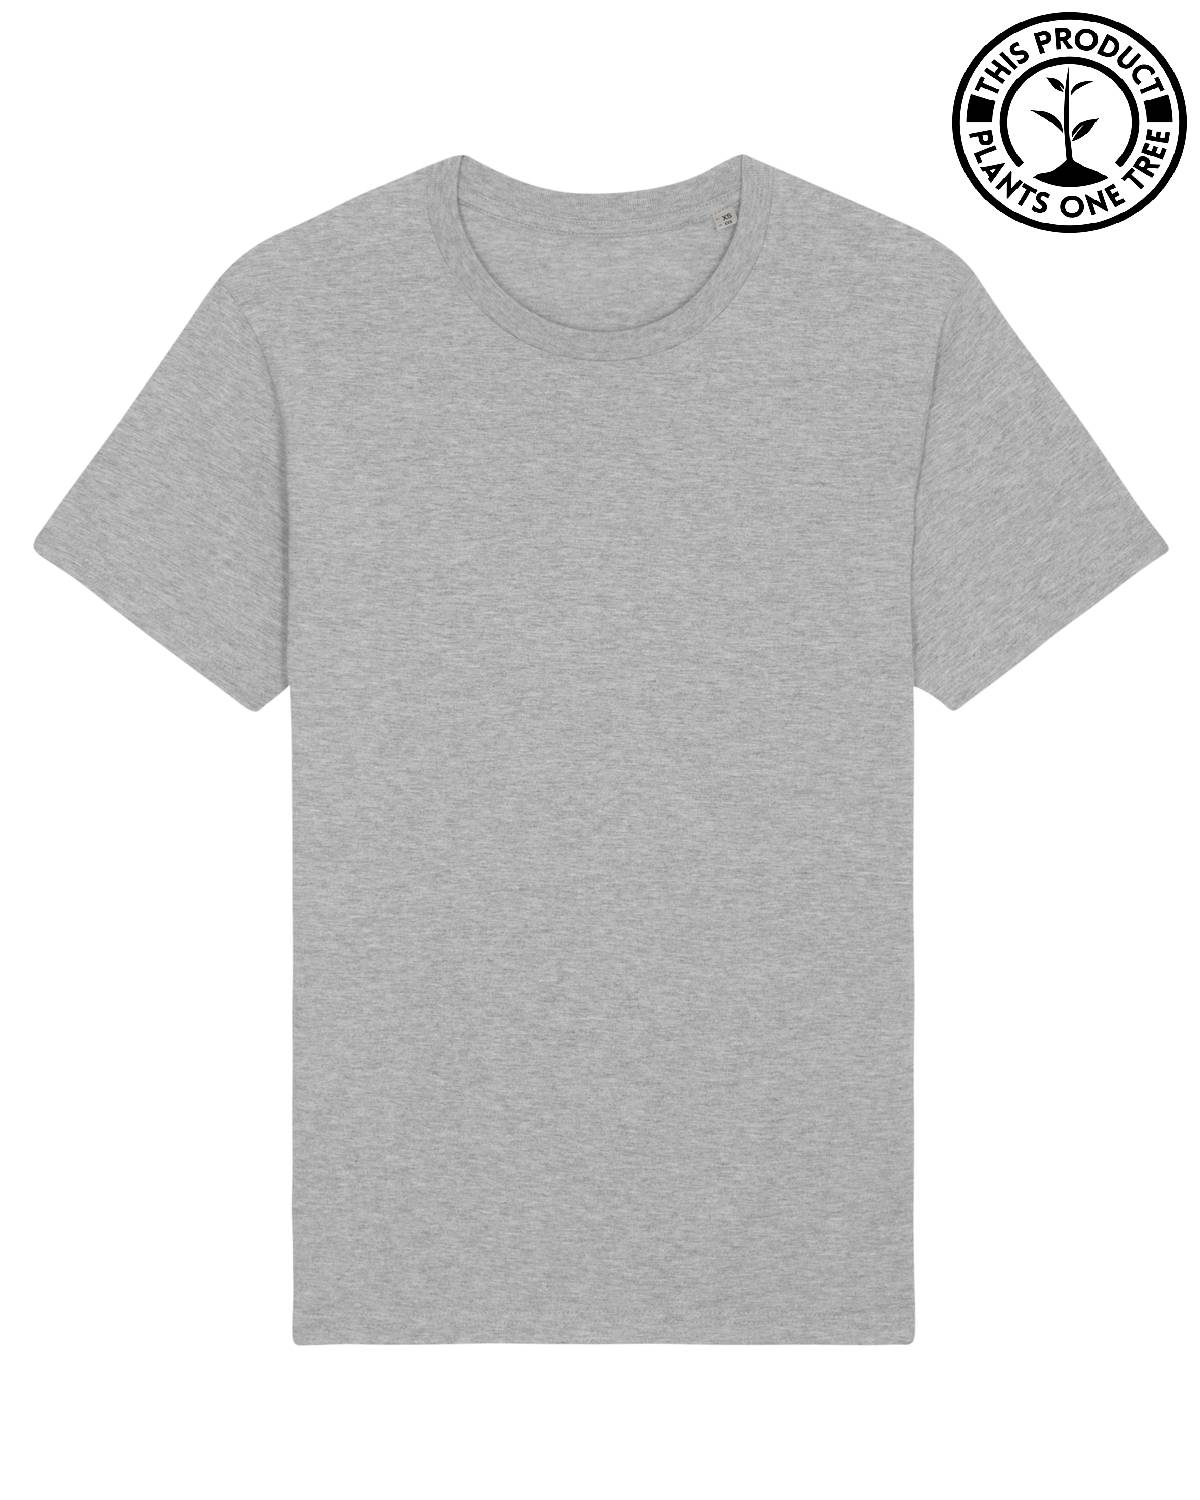 Bacis Unisex T-shirt Heather Grey